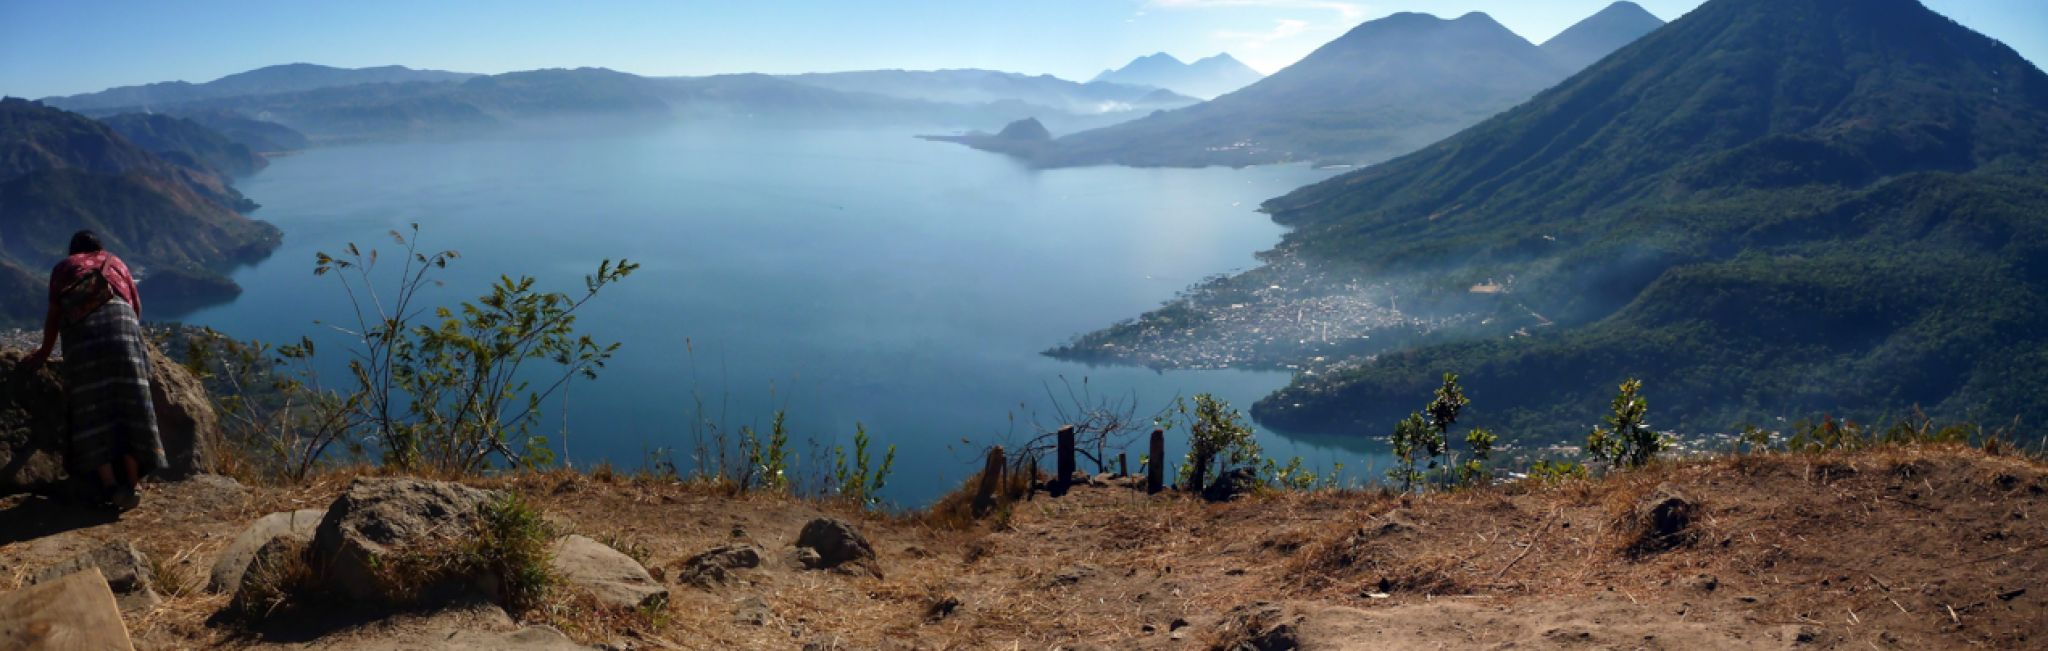 A view of San Pedro on Lake Atitlan.